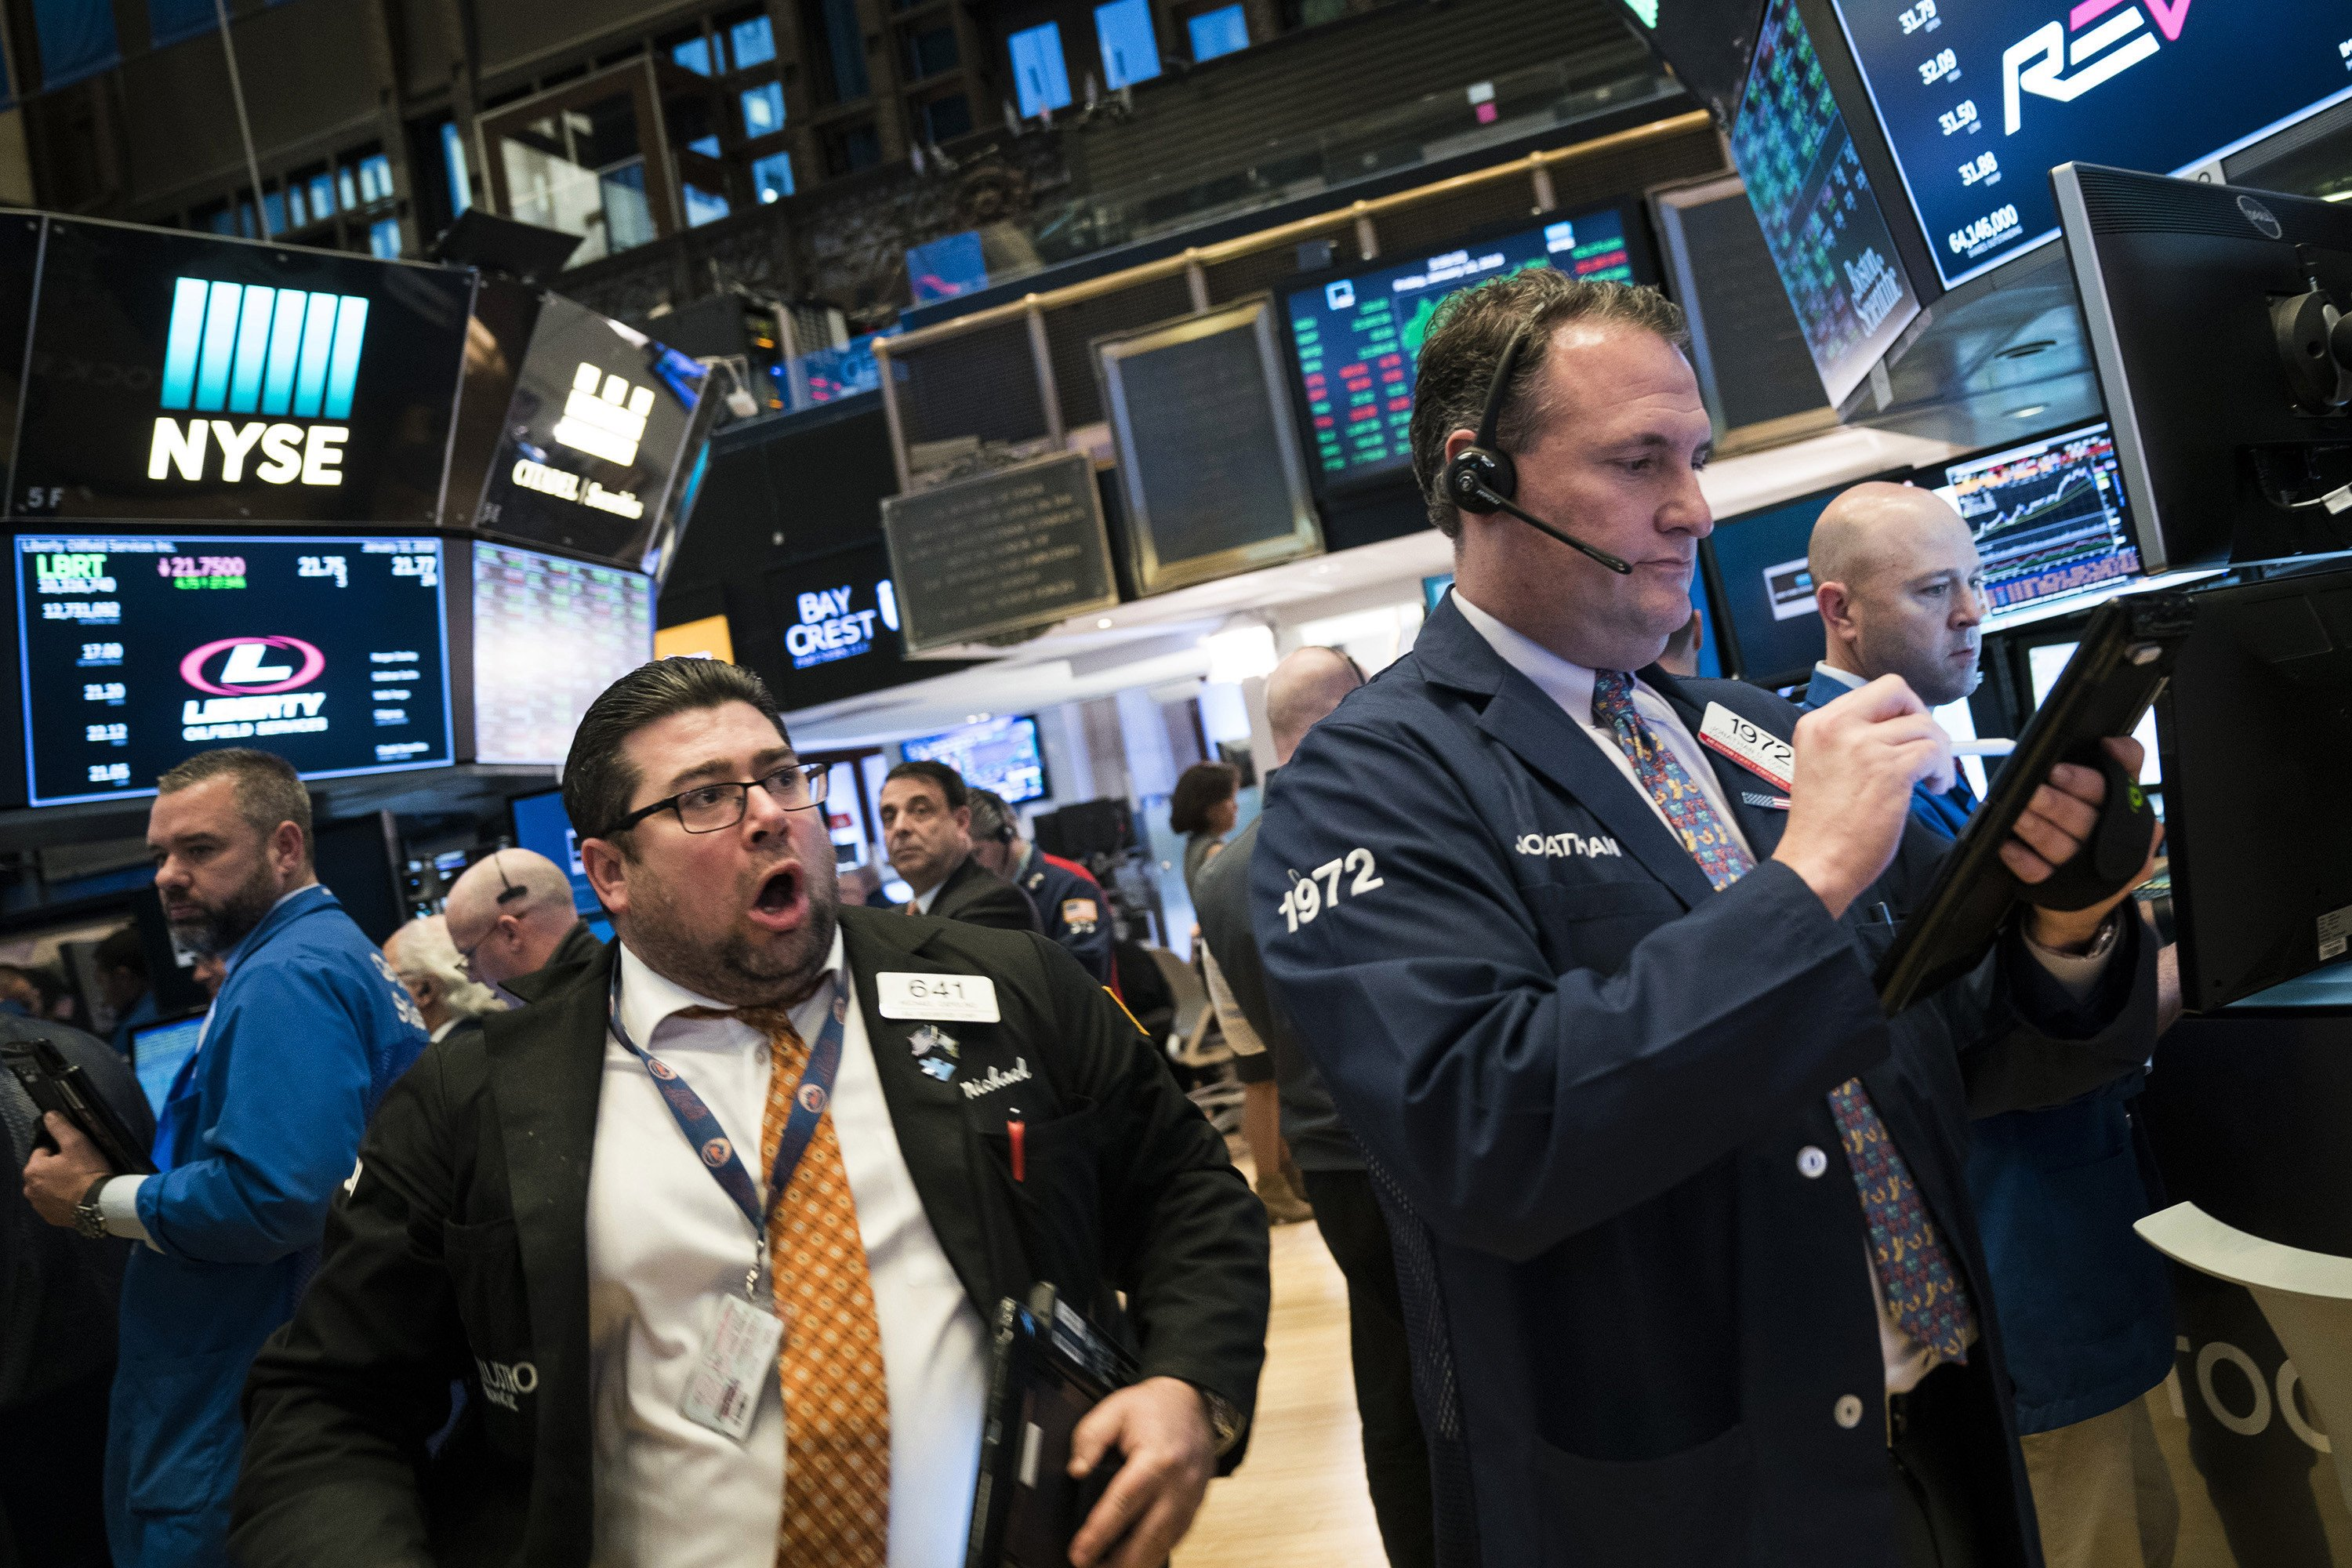 Dow crosses 26,000 for first time